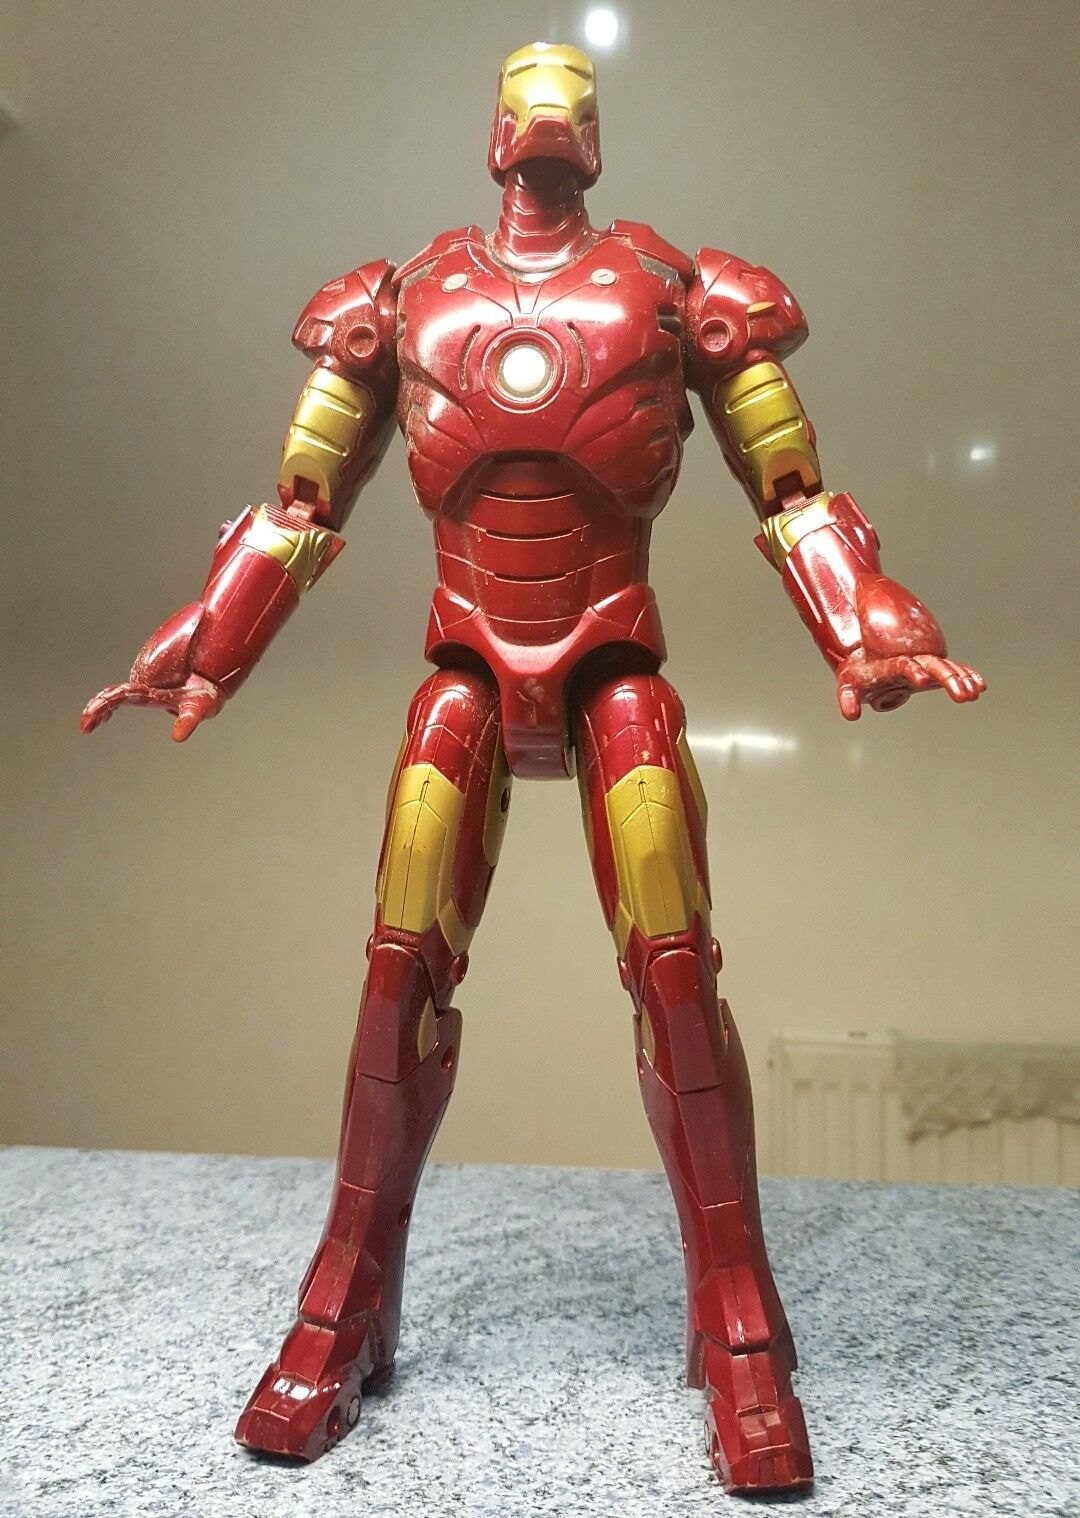 1/6 scale Iron Man Mark 3 electronic 12 inch figure from 2007